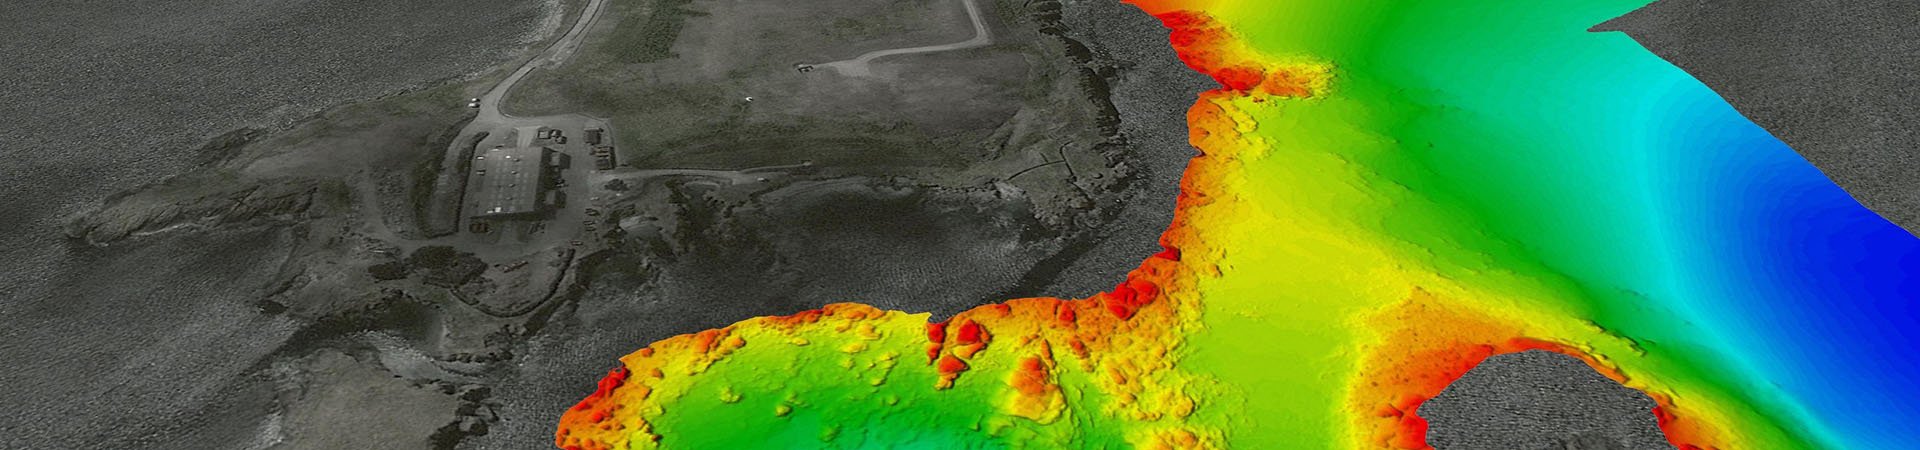 Hydrographic Lerwick scan